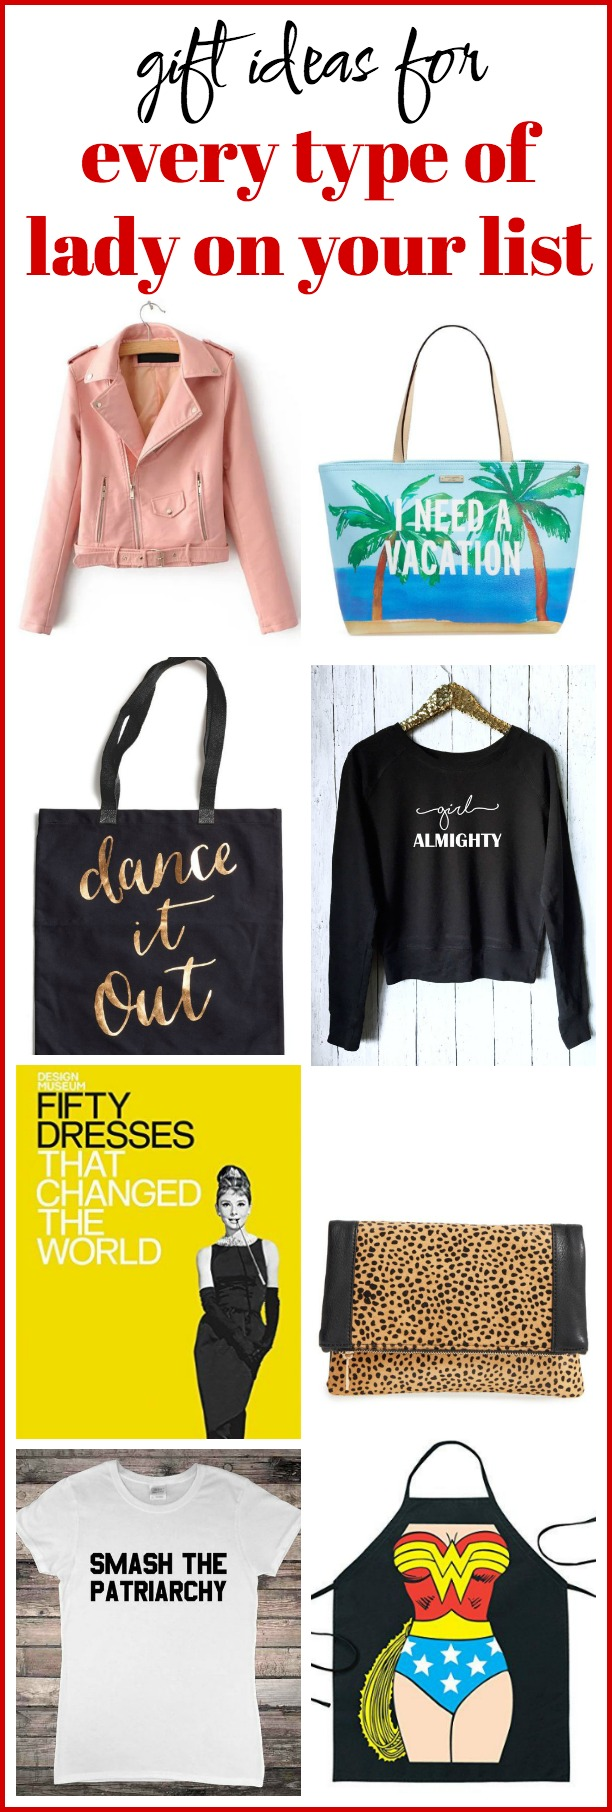 Gift Ideas for Ladies | Gift Ideas for Women | Gift Ideas for Her | Gift Ideas for Girlfriends | Gift Ideas for Best Friends